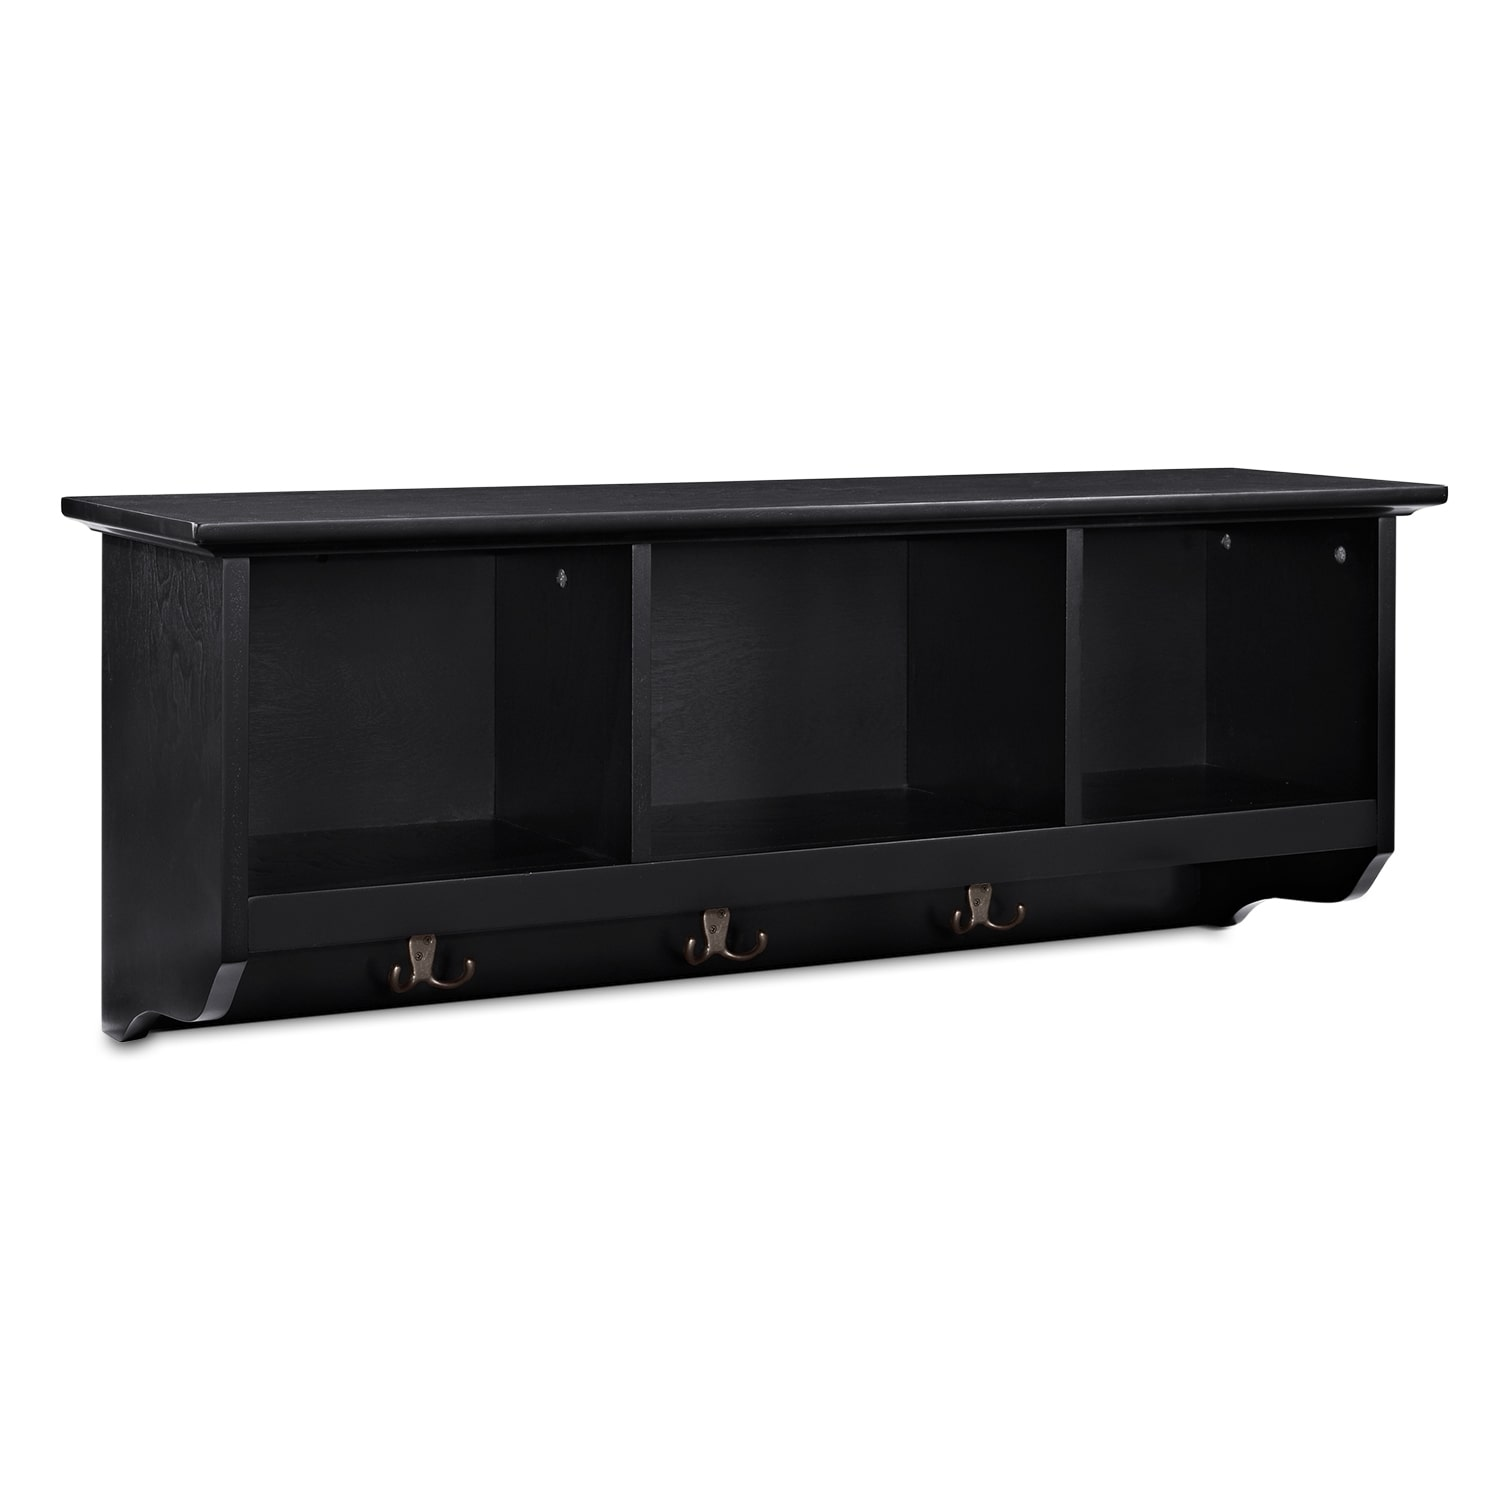 Accent and Occasional Furniture - Levi Black Entryway Storage Shelf